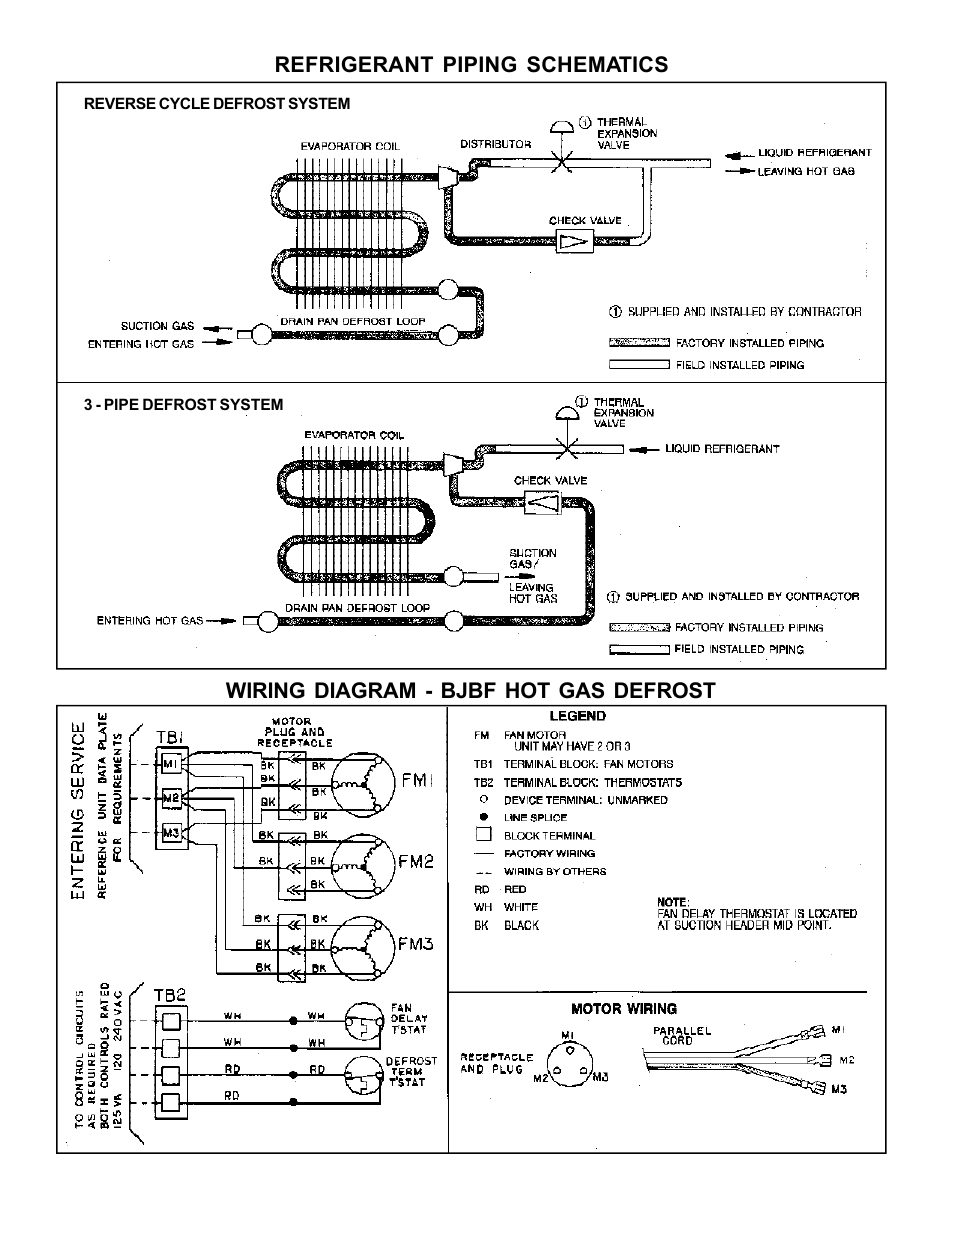 Refrigerant piping schematics, Wiring diagram, Hot gas defrost | Bally  Refrigerated Boxes BJBF Electric, and Hot Gas Defrost Blast Freezers User  Manual ...